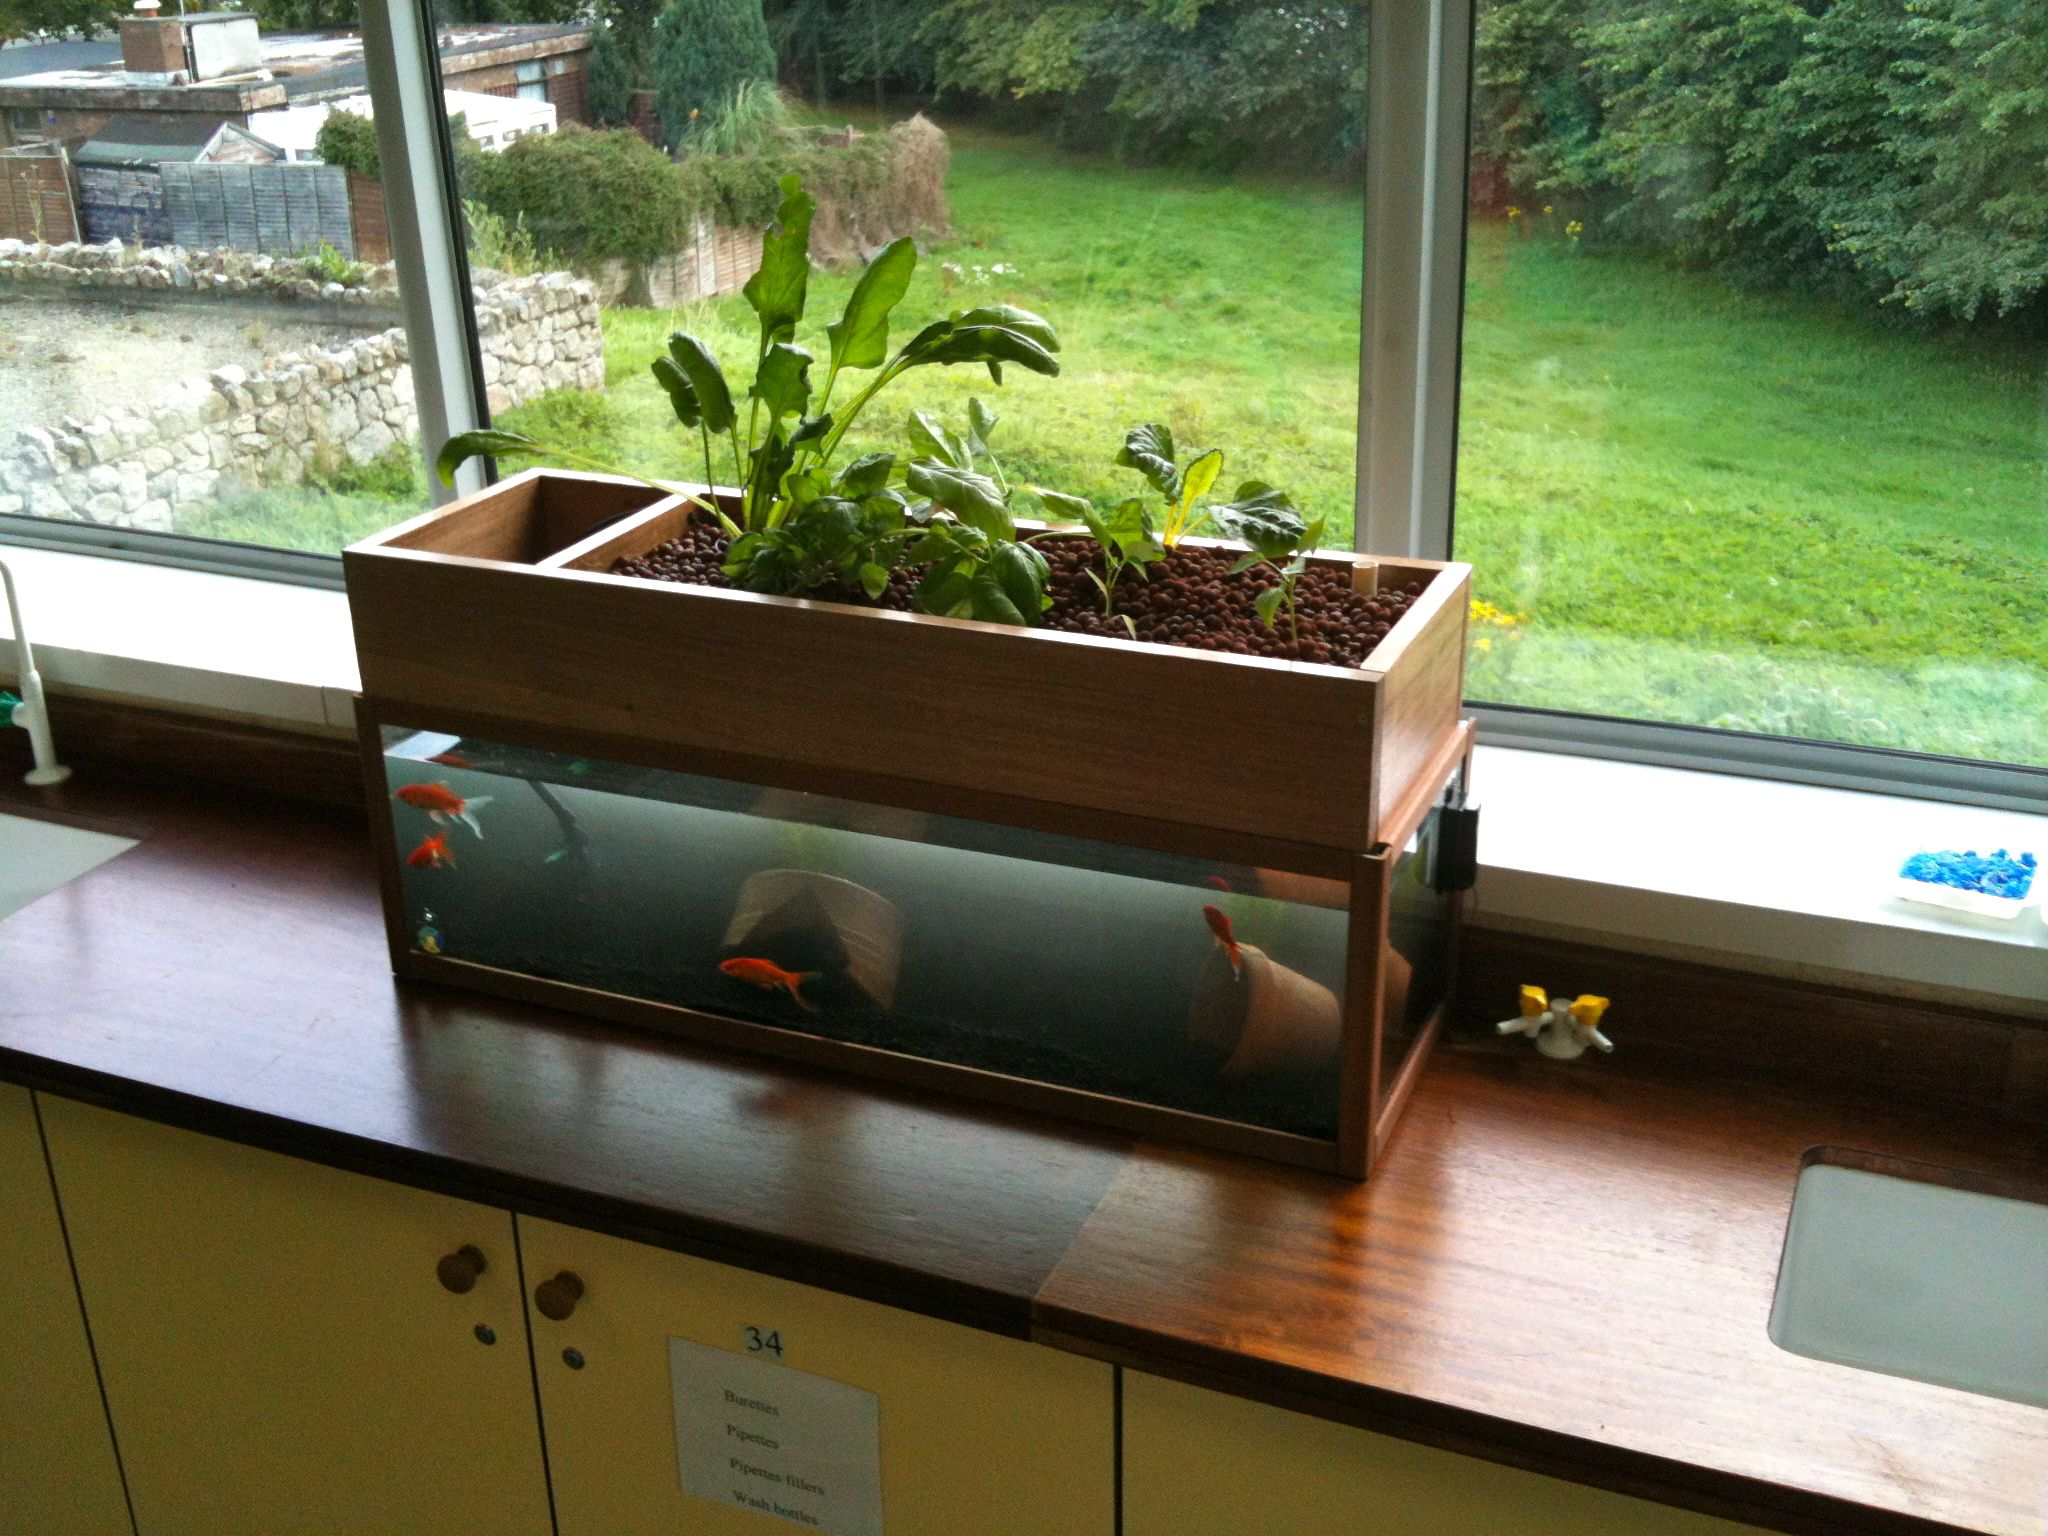 Aquaponics aquaponics system fish tanks and aquariums for Fish used in aquaponics